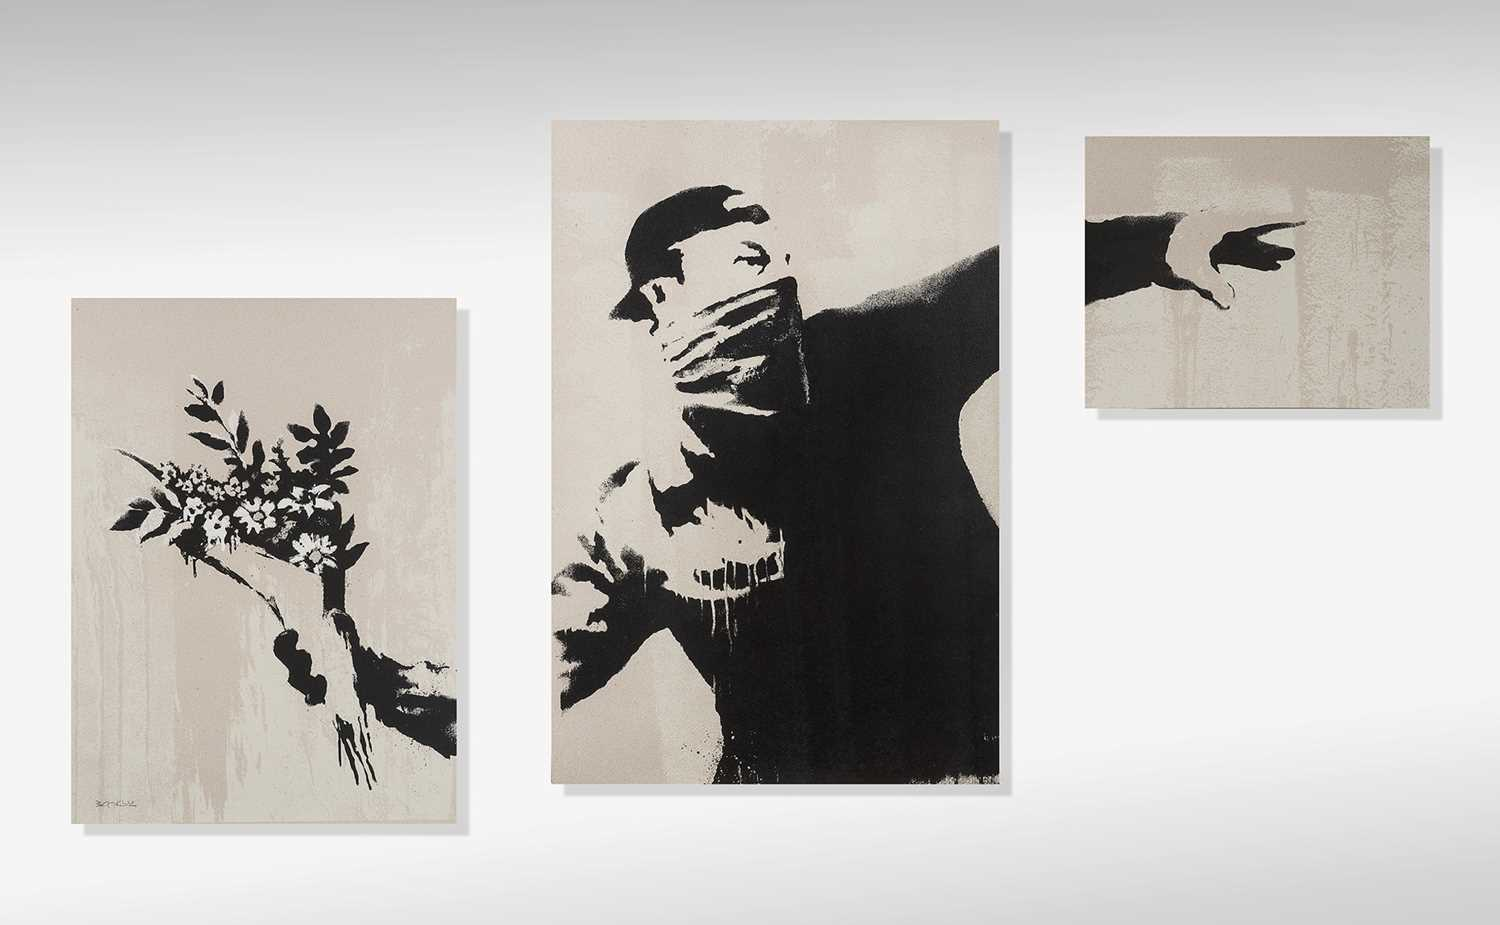 Lot 231-Banksy (British 1974-), 'Thrower (Grey)', 2019 (Signed)